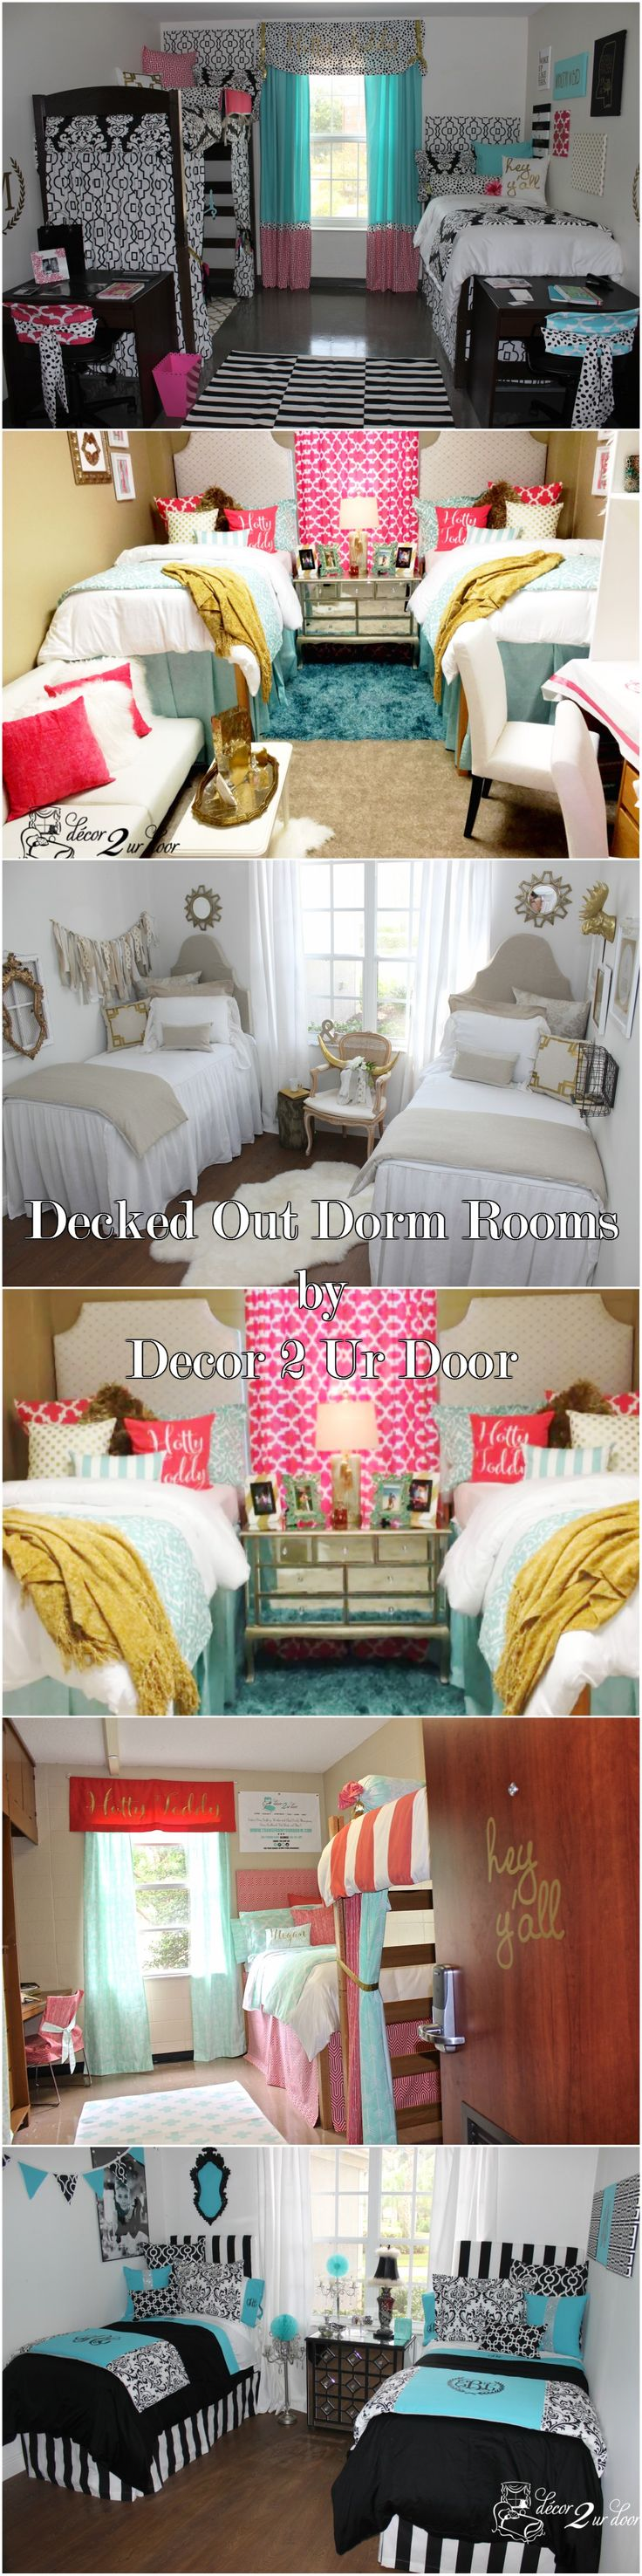 Design Your Own Dorm Room Bedding And Decor Accessories Decorating Your Dorm Room Has Never Been Easier